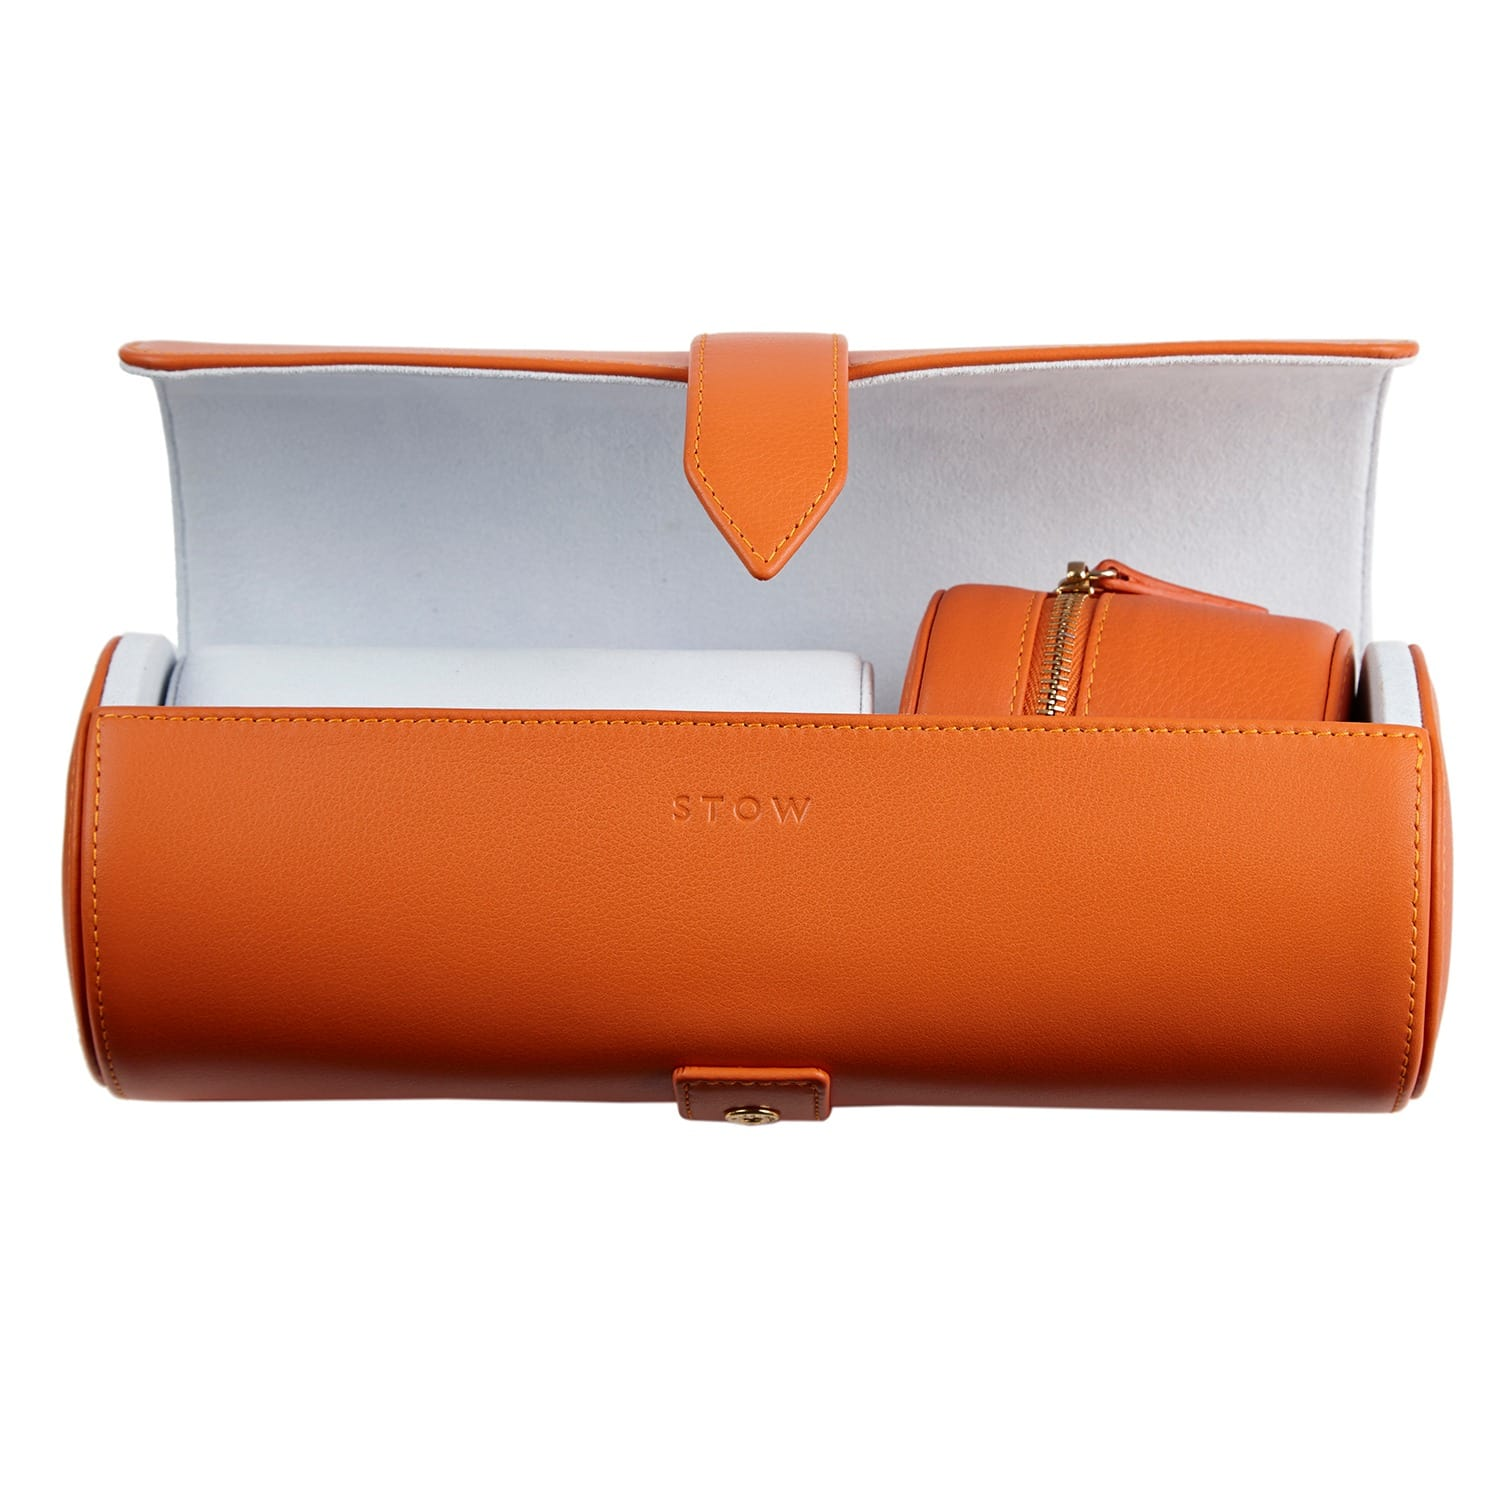 06842808c Soft Leather Sanderson Travel Watch Roll and Stud Box Set Amber Orange